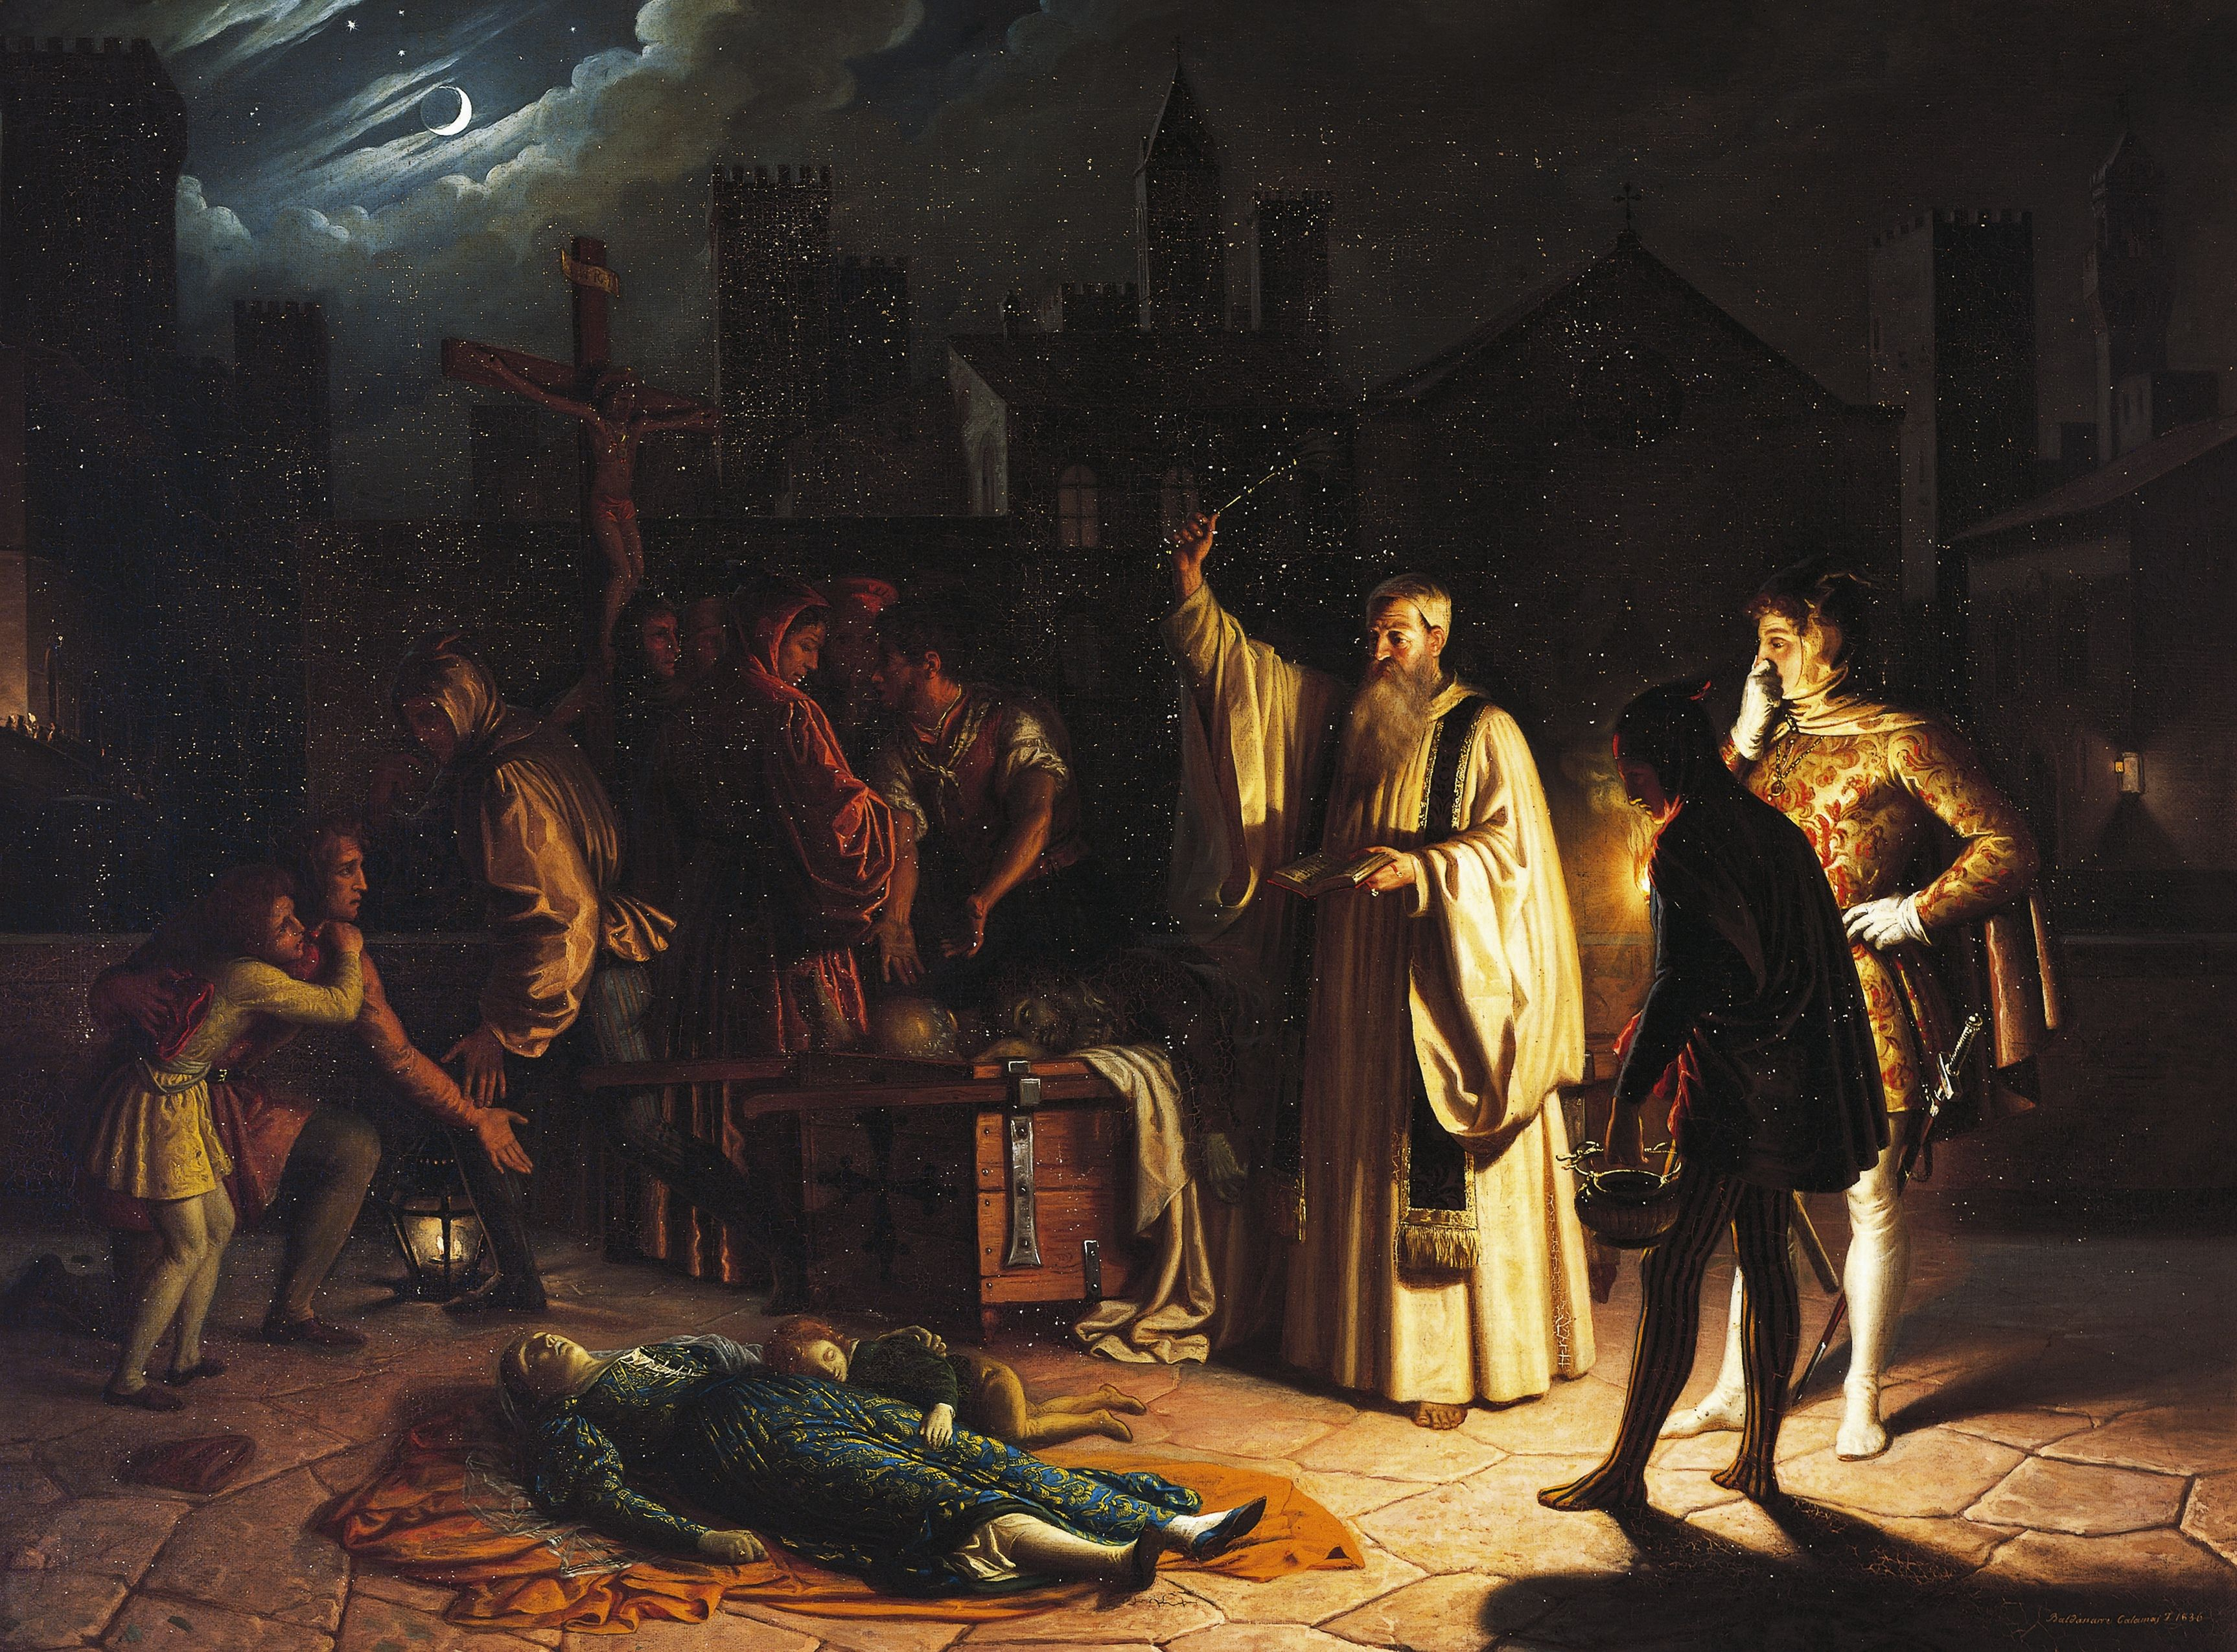 Scene of the plague in Florence in 1348 described by Boccaccio, by Baldassarre Calamai (1787-1851), oil on canvas, 95x126 cm, Italy